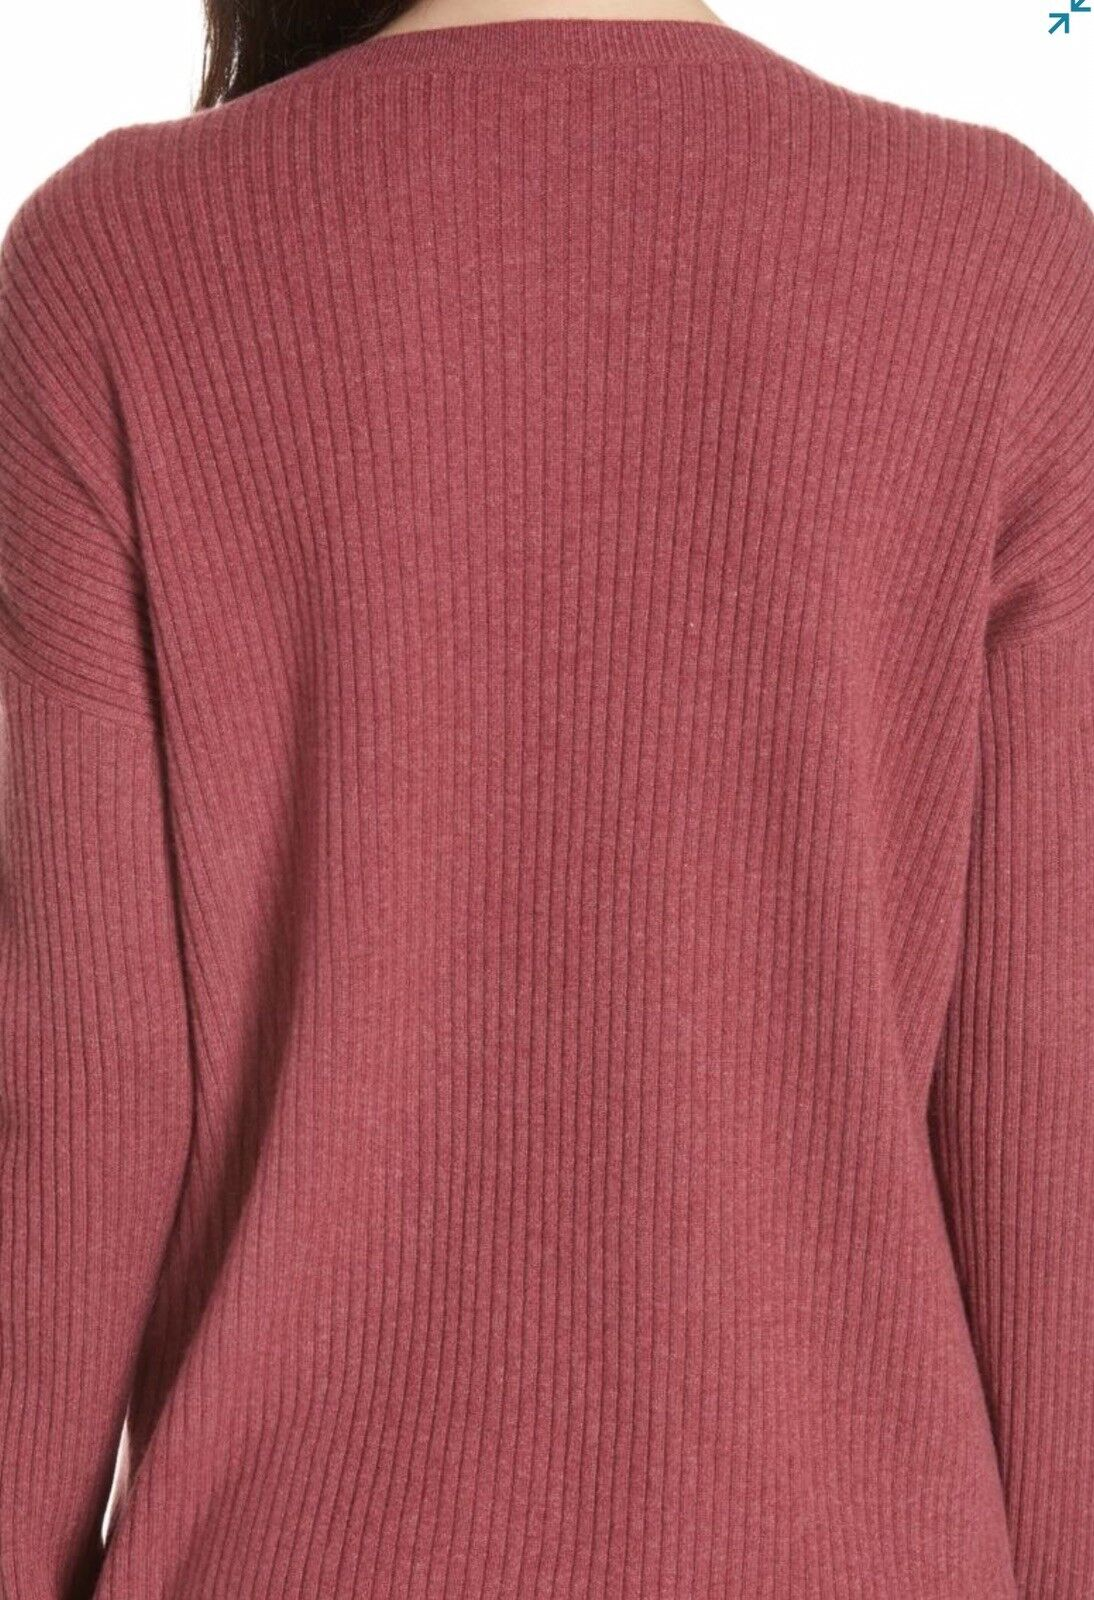 Eileen Fisher Boxy Ribbed Motry Red Red Red Cashmere Sweater Size M 815c31